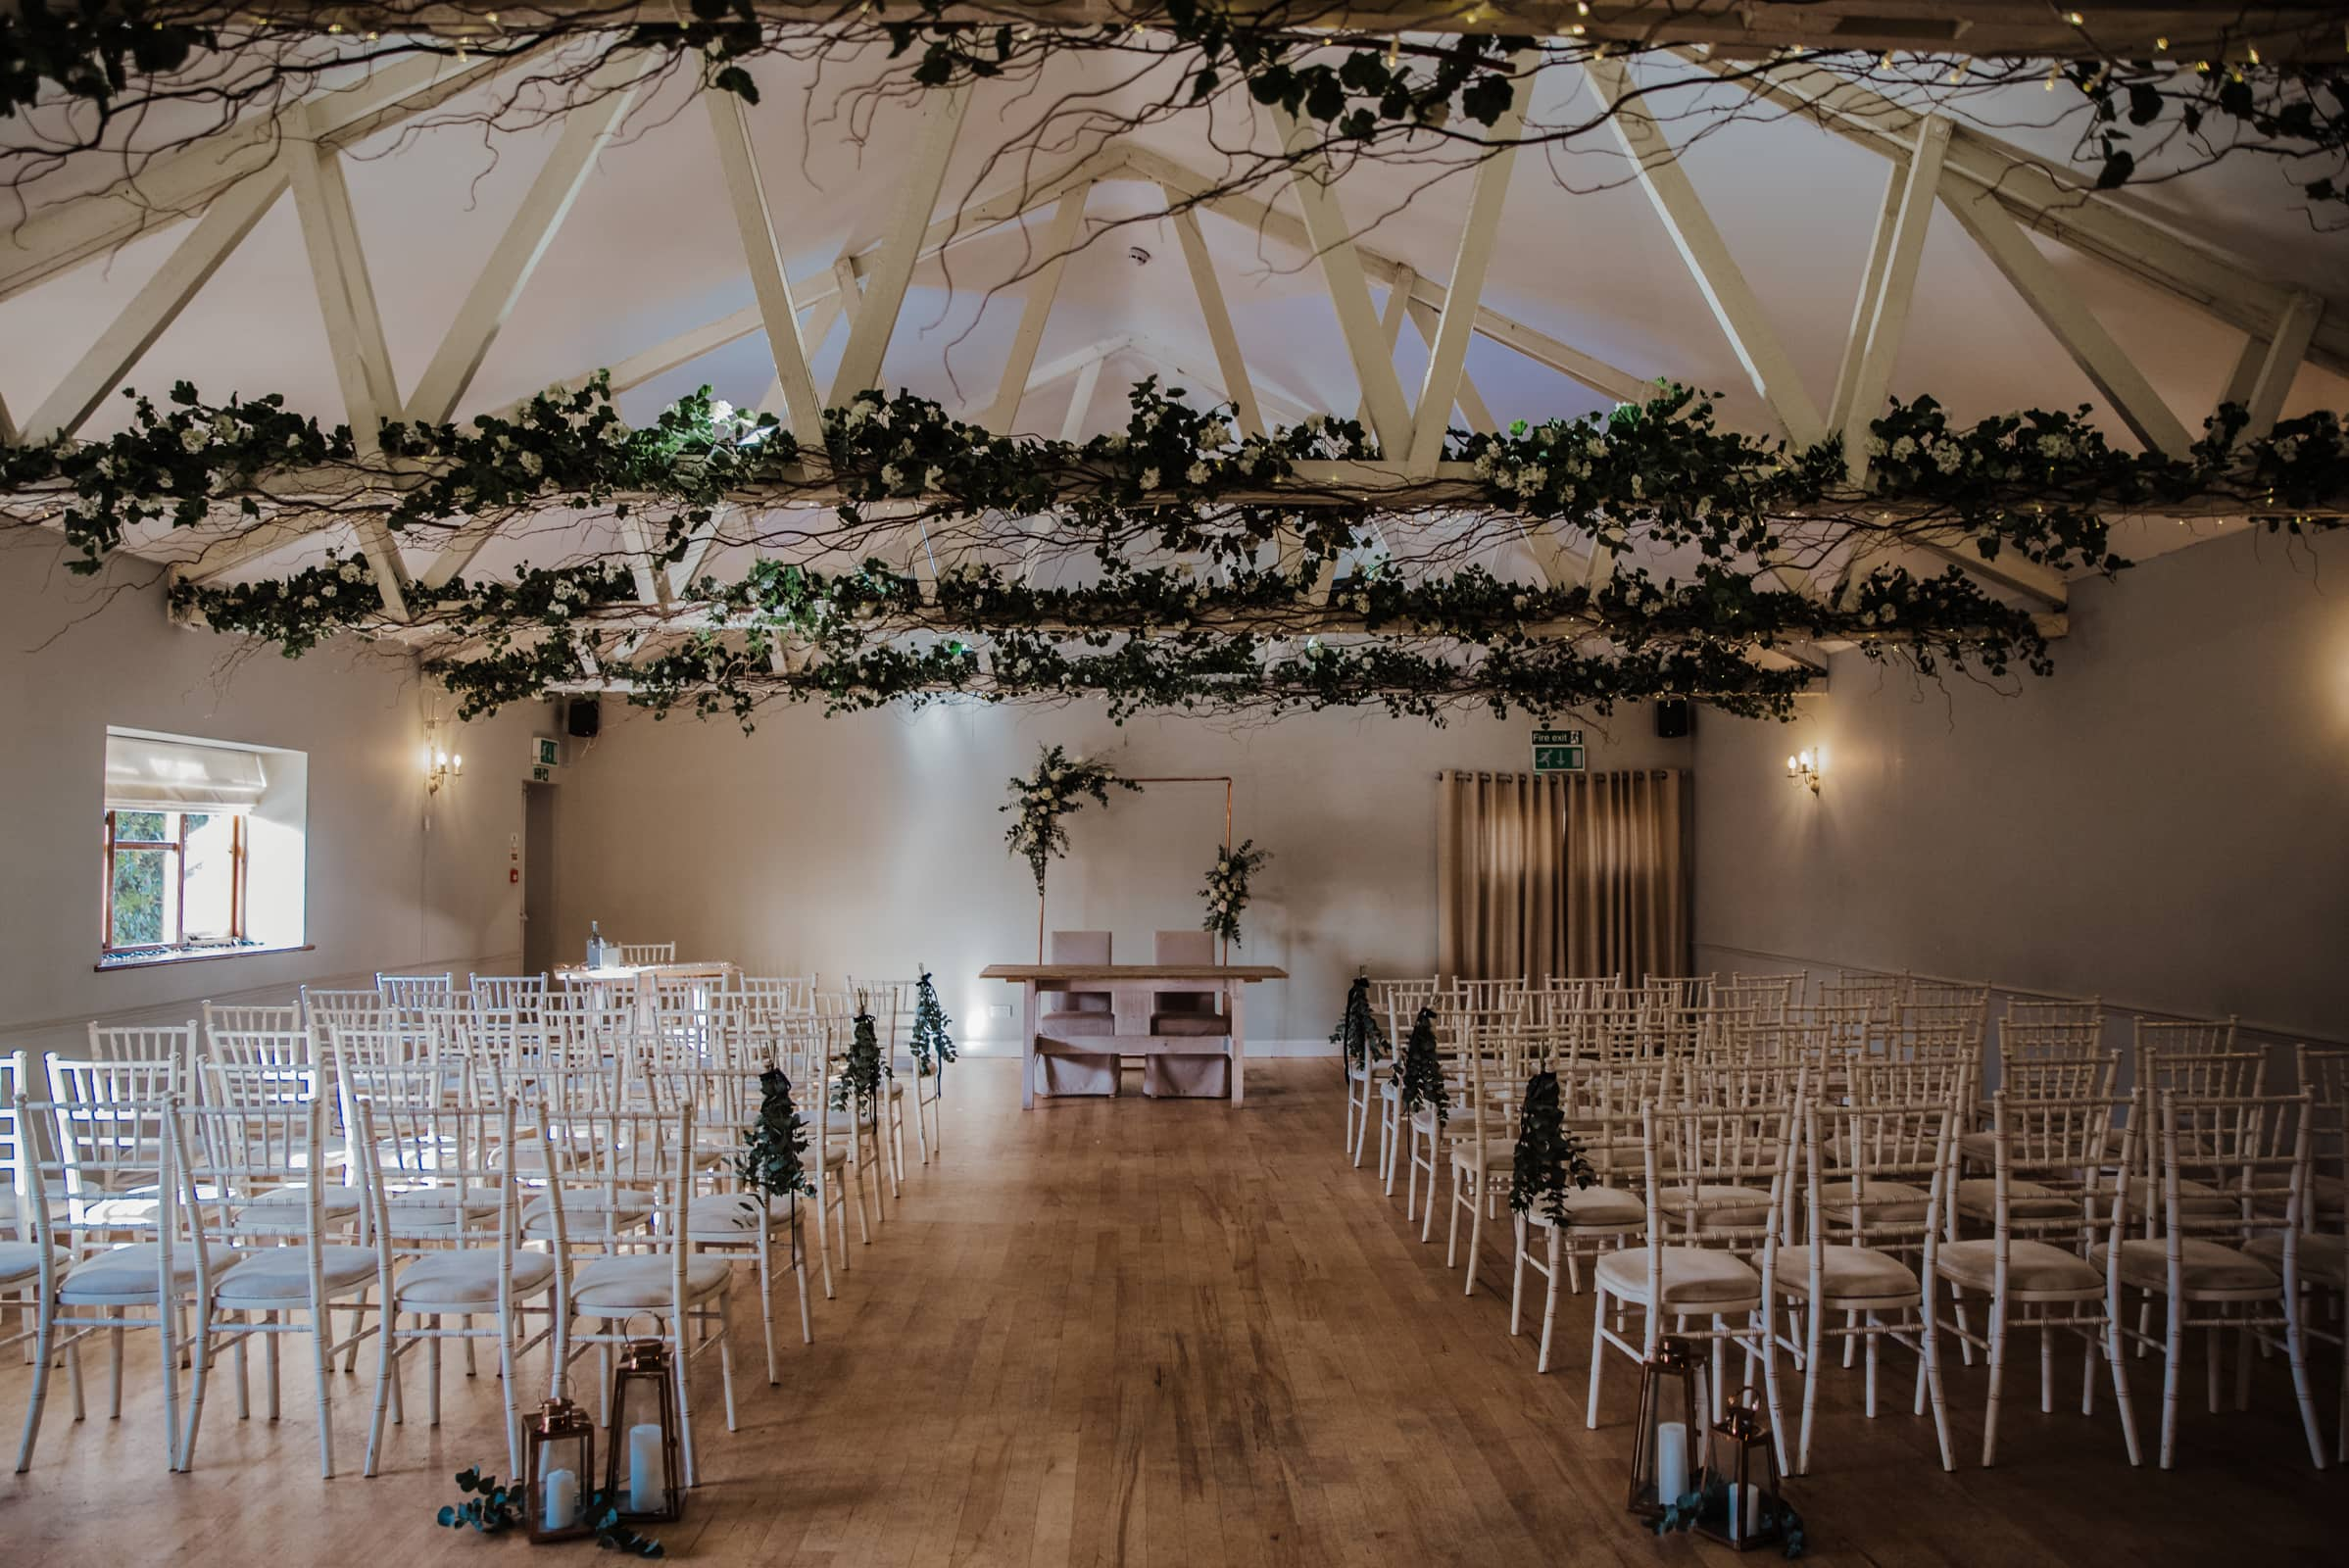 wedding ceremony hall with chairs and deocr Roshni photography The Milling Barn, Bluntswood Hall, Throcking wedding photographer